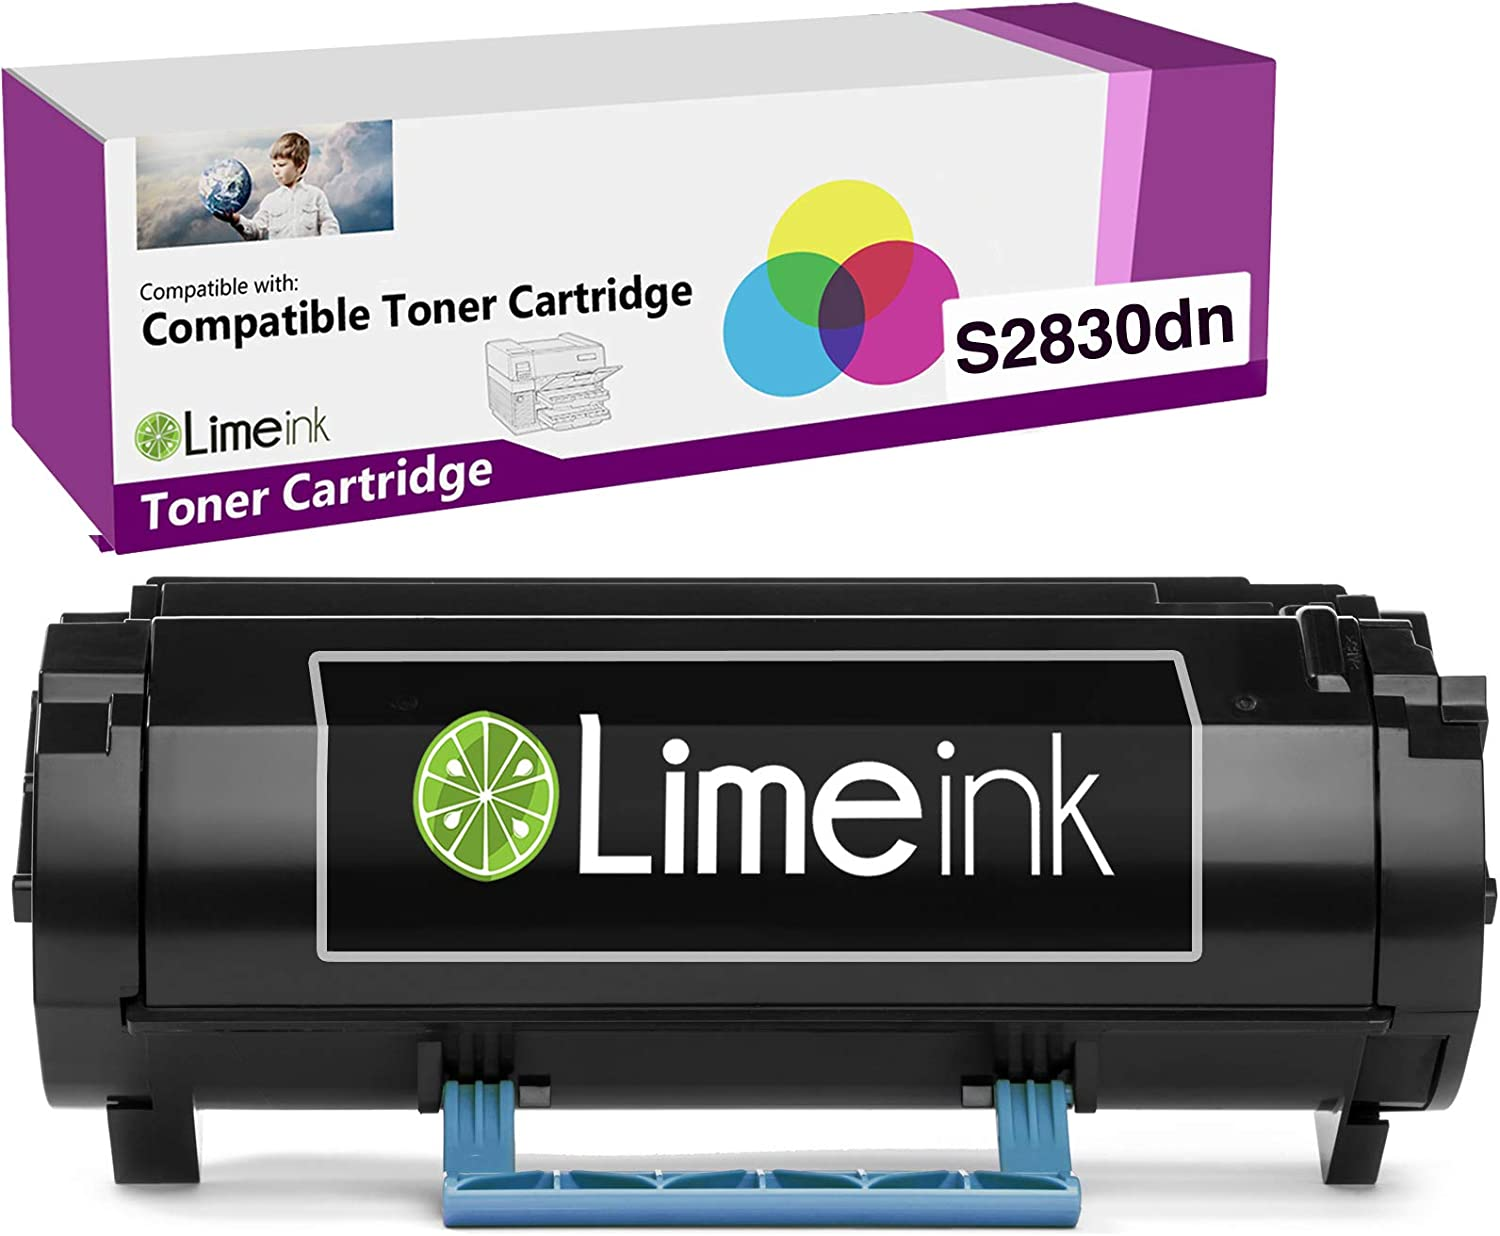 Limeink 1 Black Compatible S2830 High Yield Laser Toner Cartridge Replacement for Dell S2830dn S2830 2830 dn 2830dn Smart Series Printer Ink